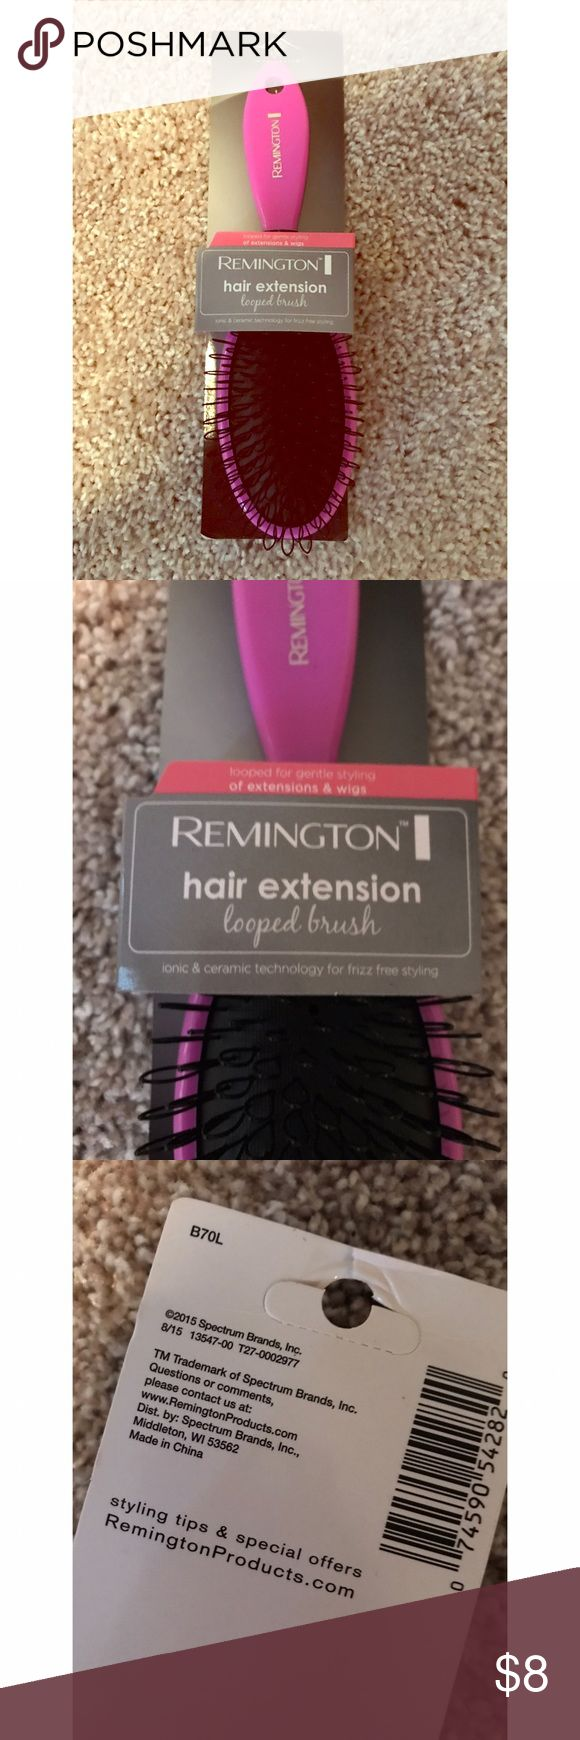 Remington hair extension brush Looped brush designed to gently brush and style wigs and extensions. remington Other